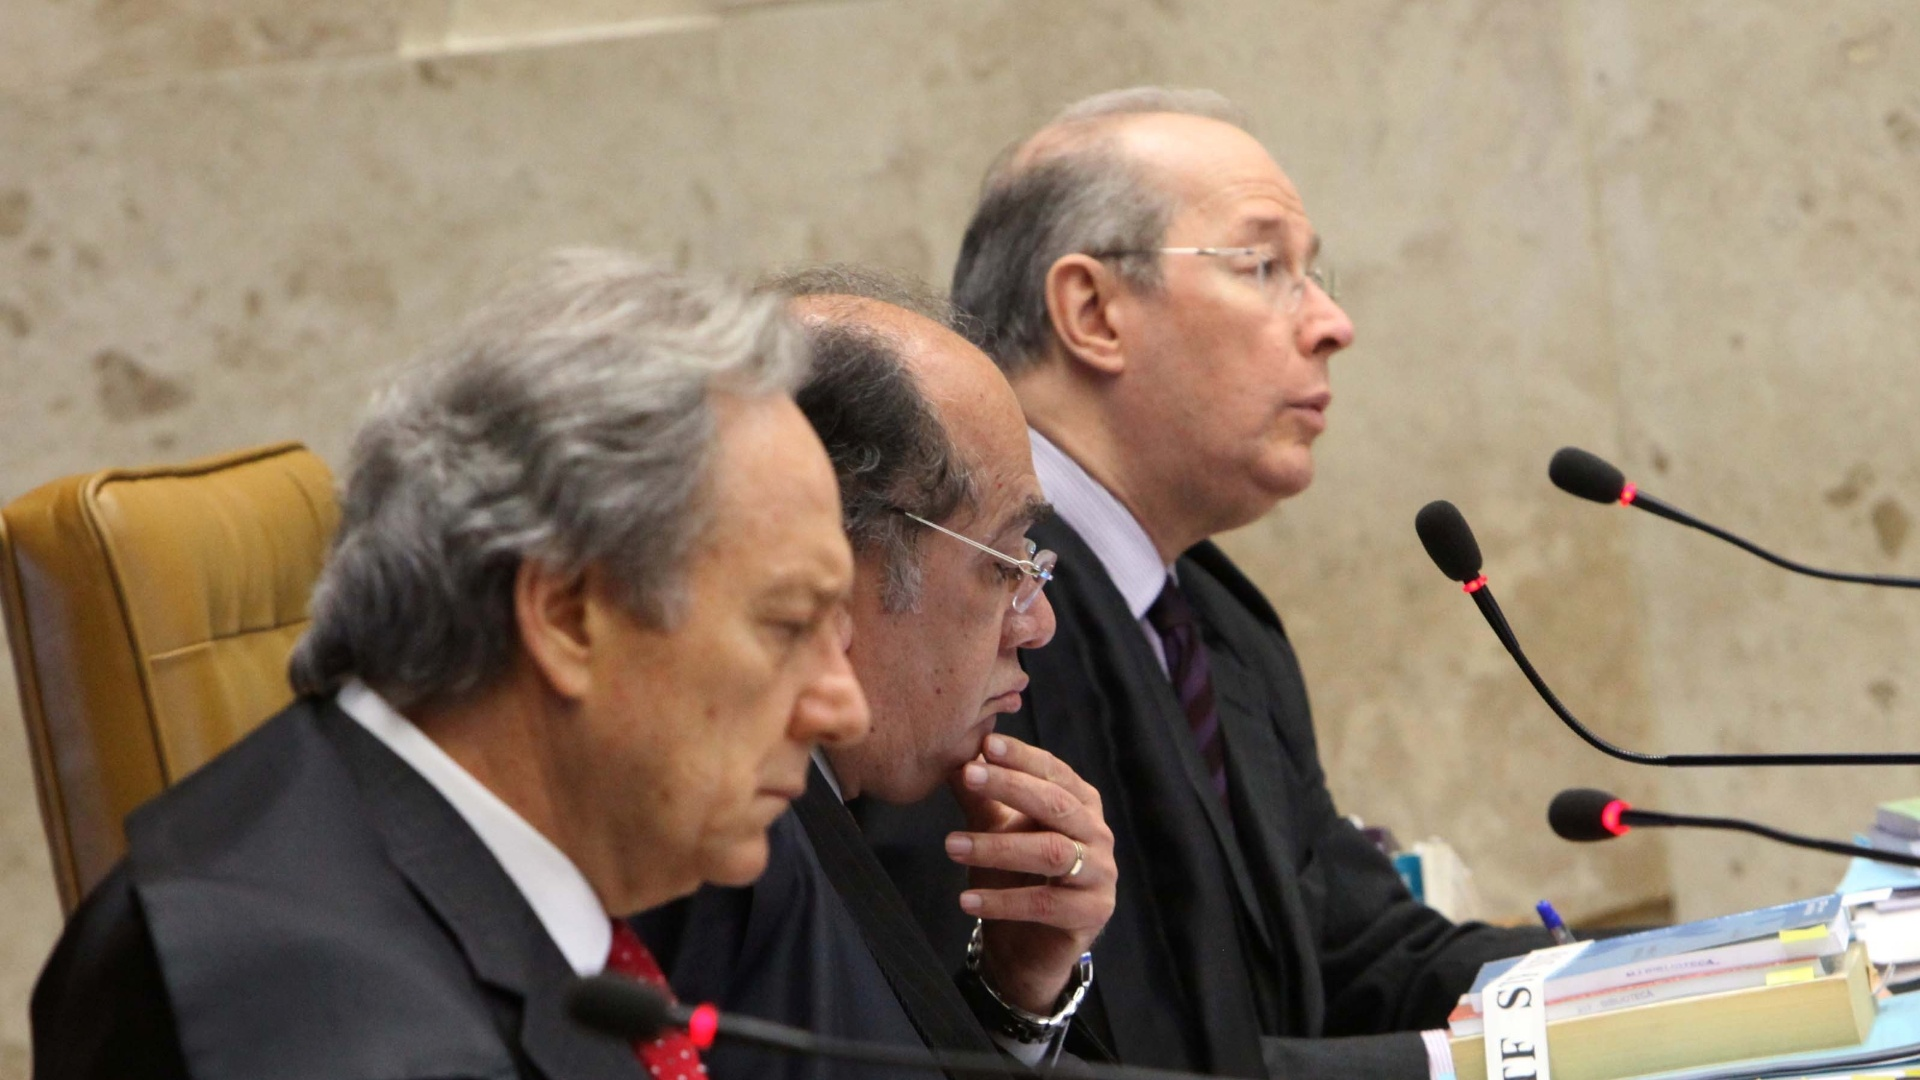 17.out.2012 - Os ministros Ricardo Lewandowski, Gilmar Mendes e Celso de Mello acompanham sesso no STF